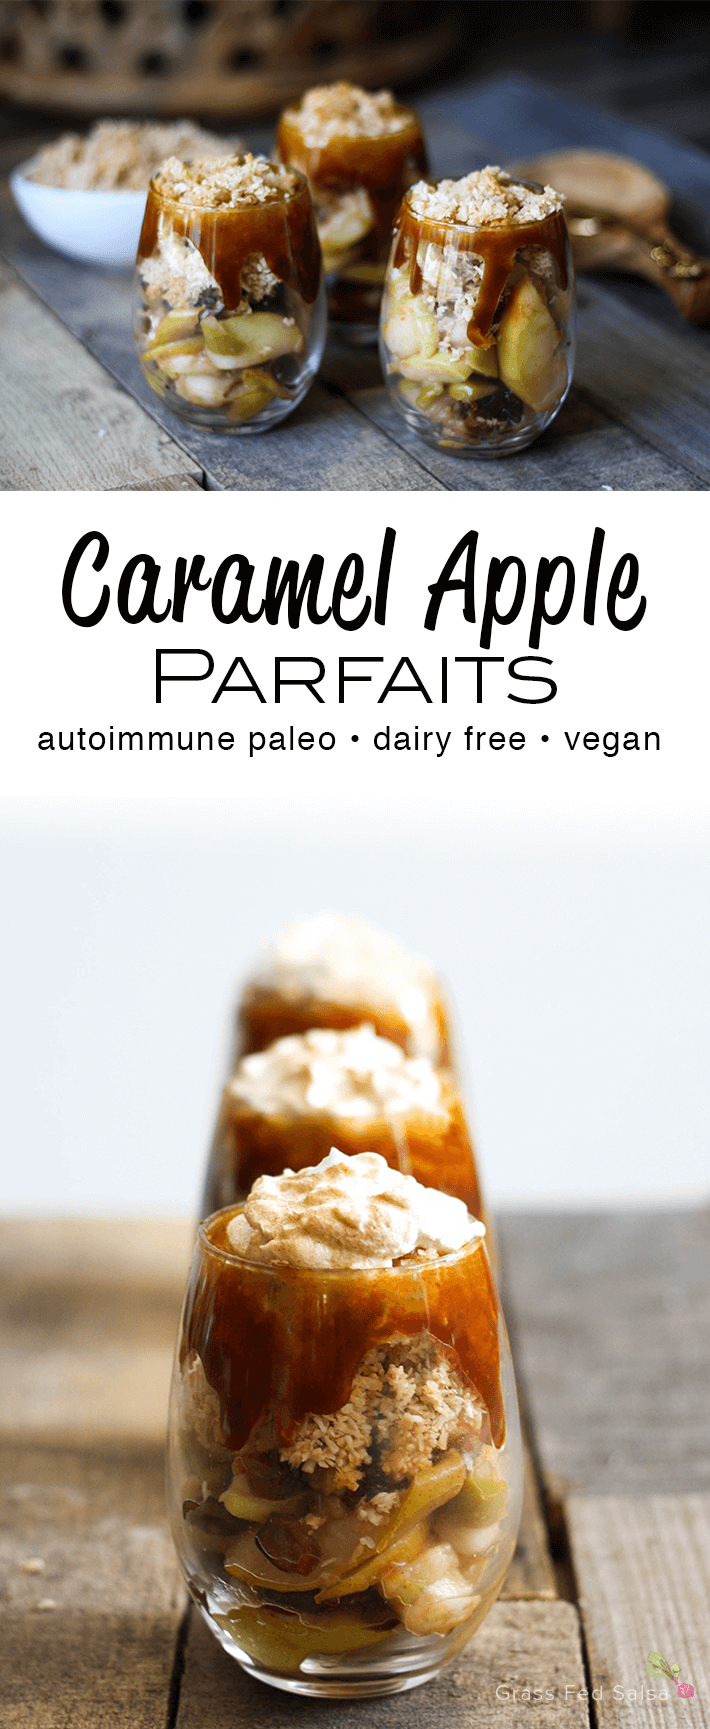 Caramel Apple Parfaits - www.savorylotus.com